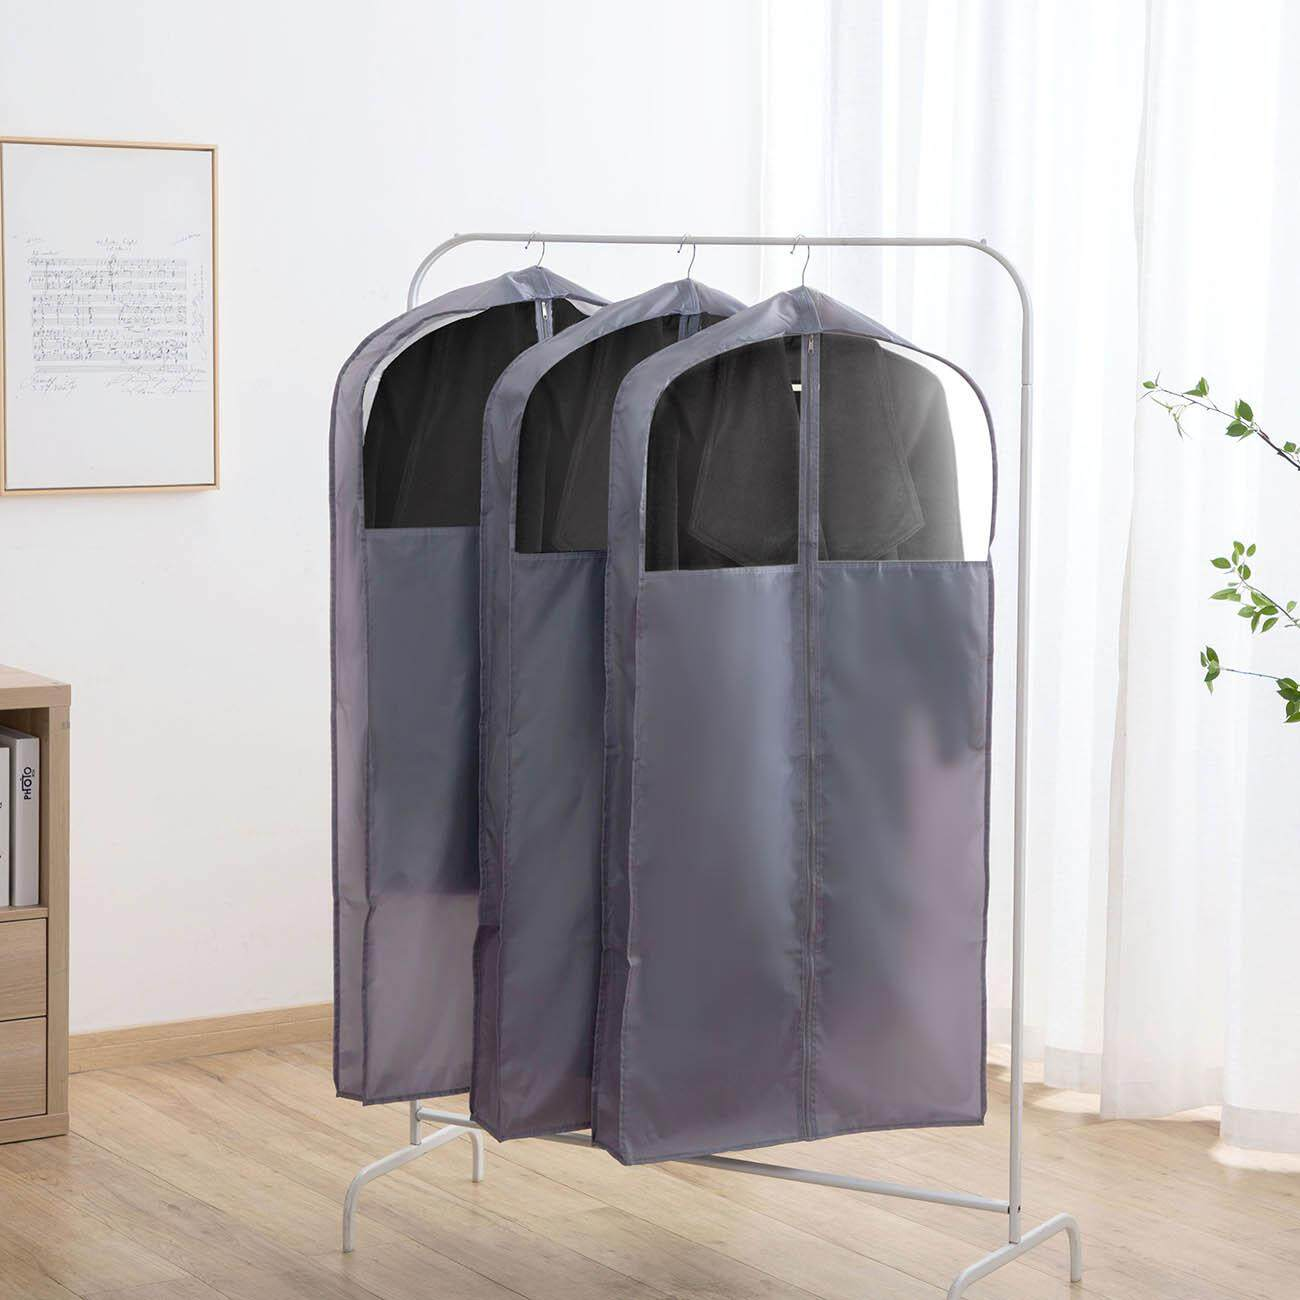 Homenhome Cloth Coat Cover 1 pcs Hanging Clothes Storage Pocket Wardrobe Organizer